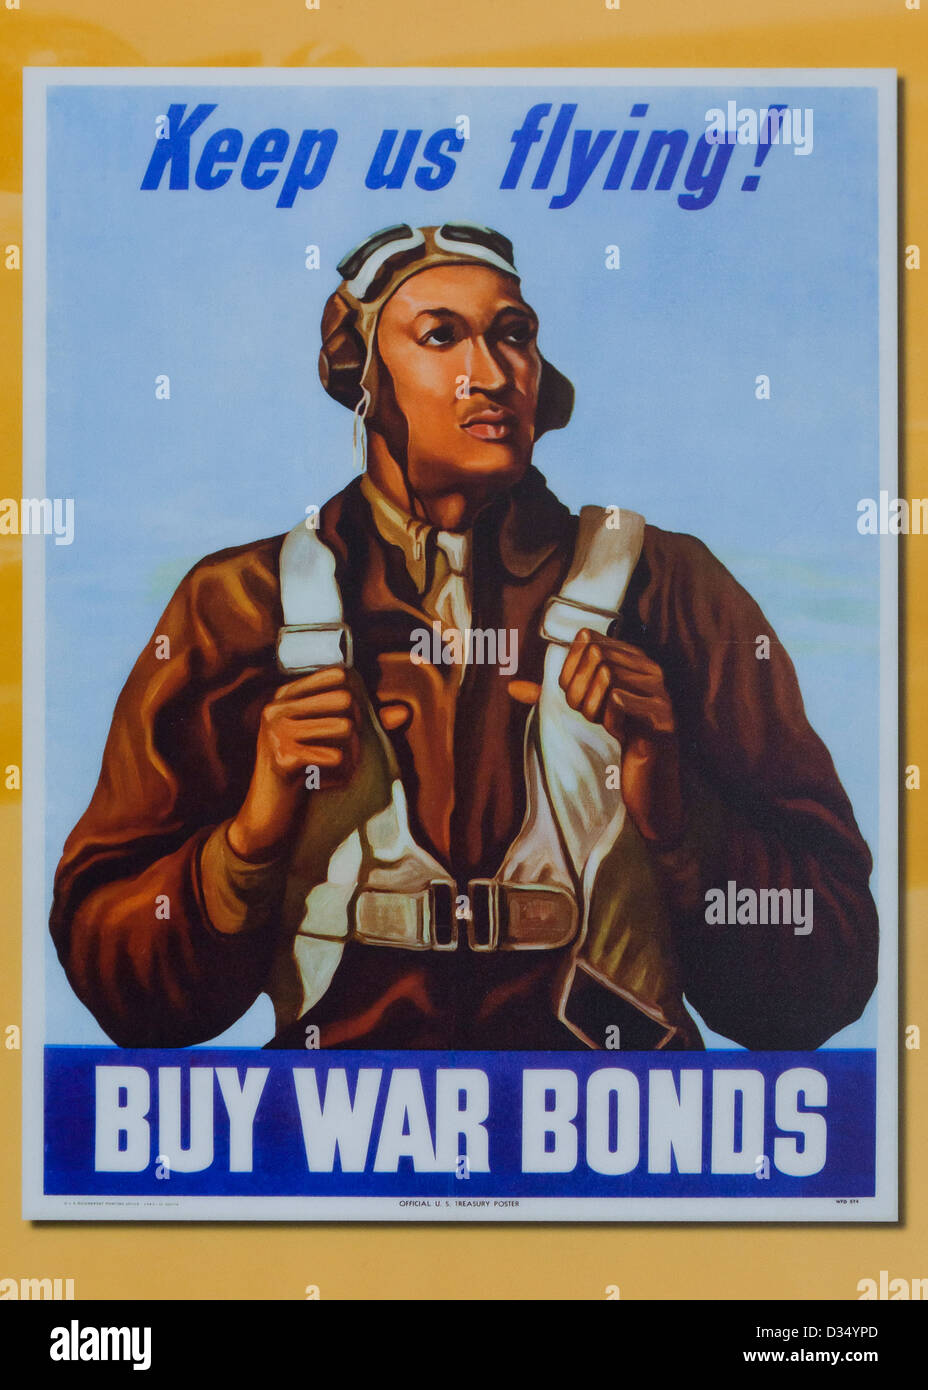 WWII War Bonds promotion poster featuring Tuskegee Airman William Diez - USA - Stock Image